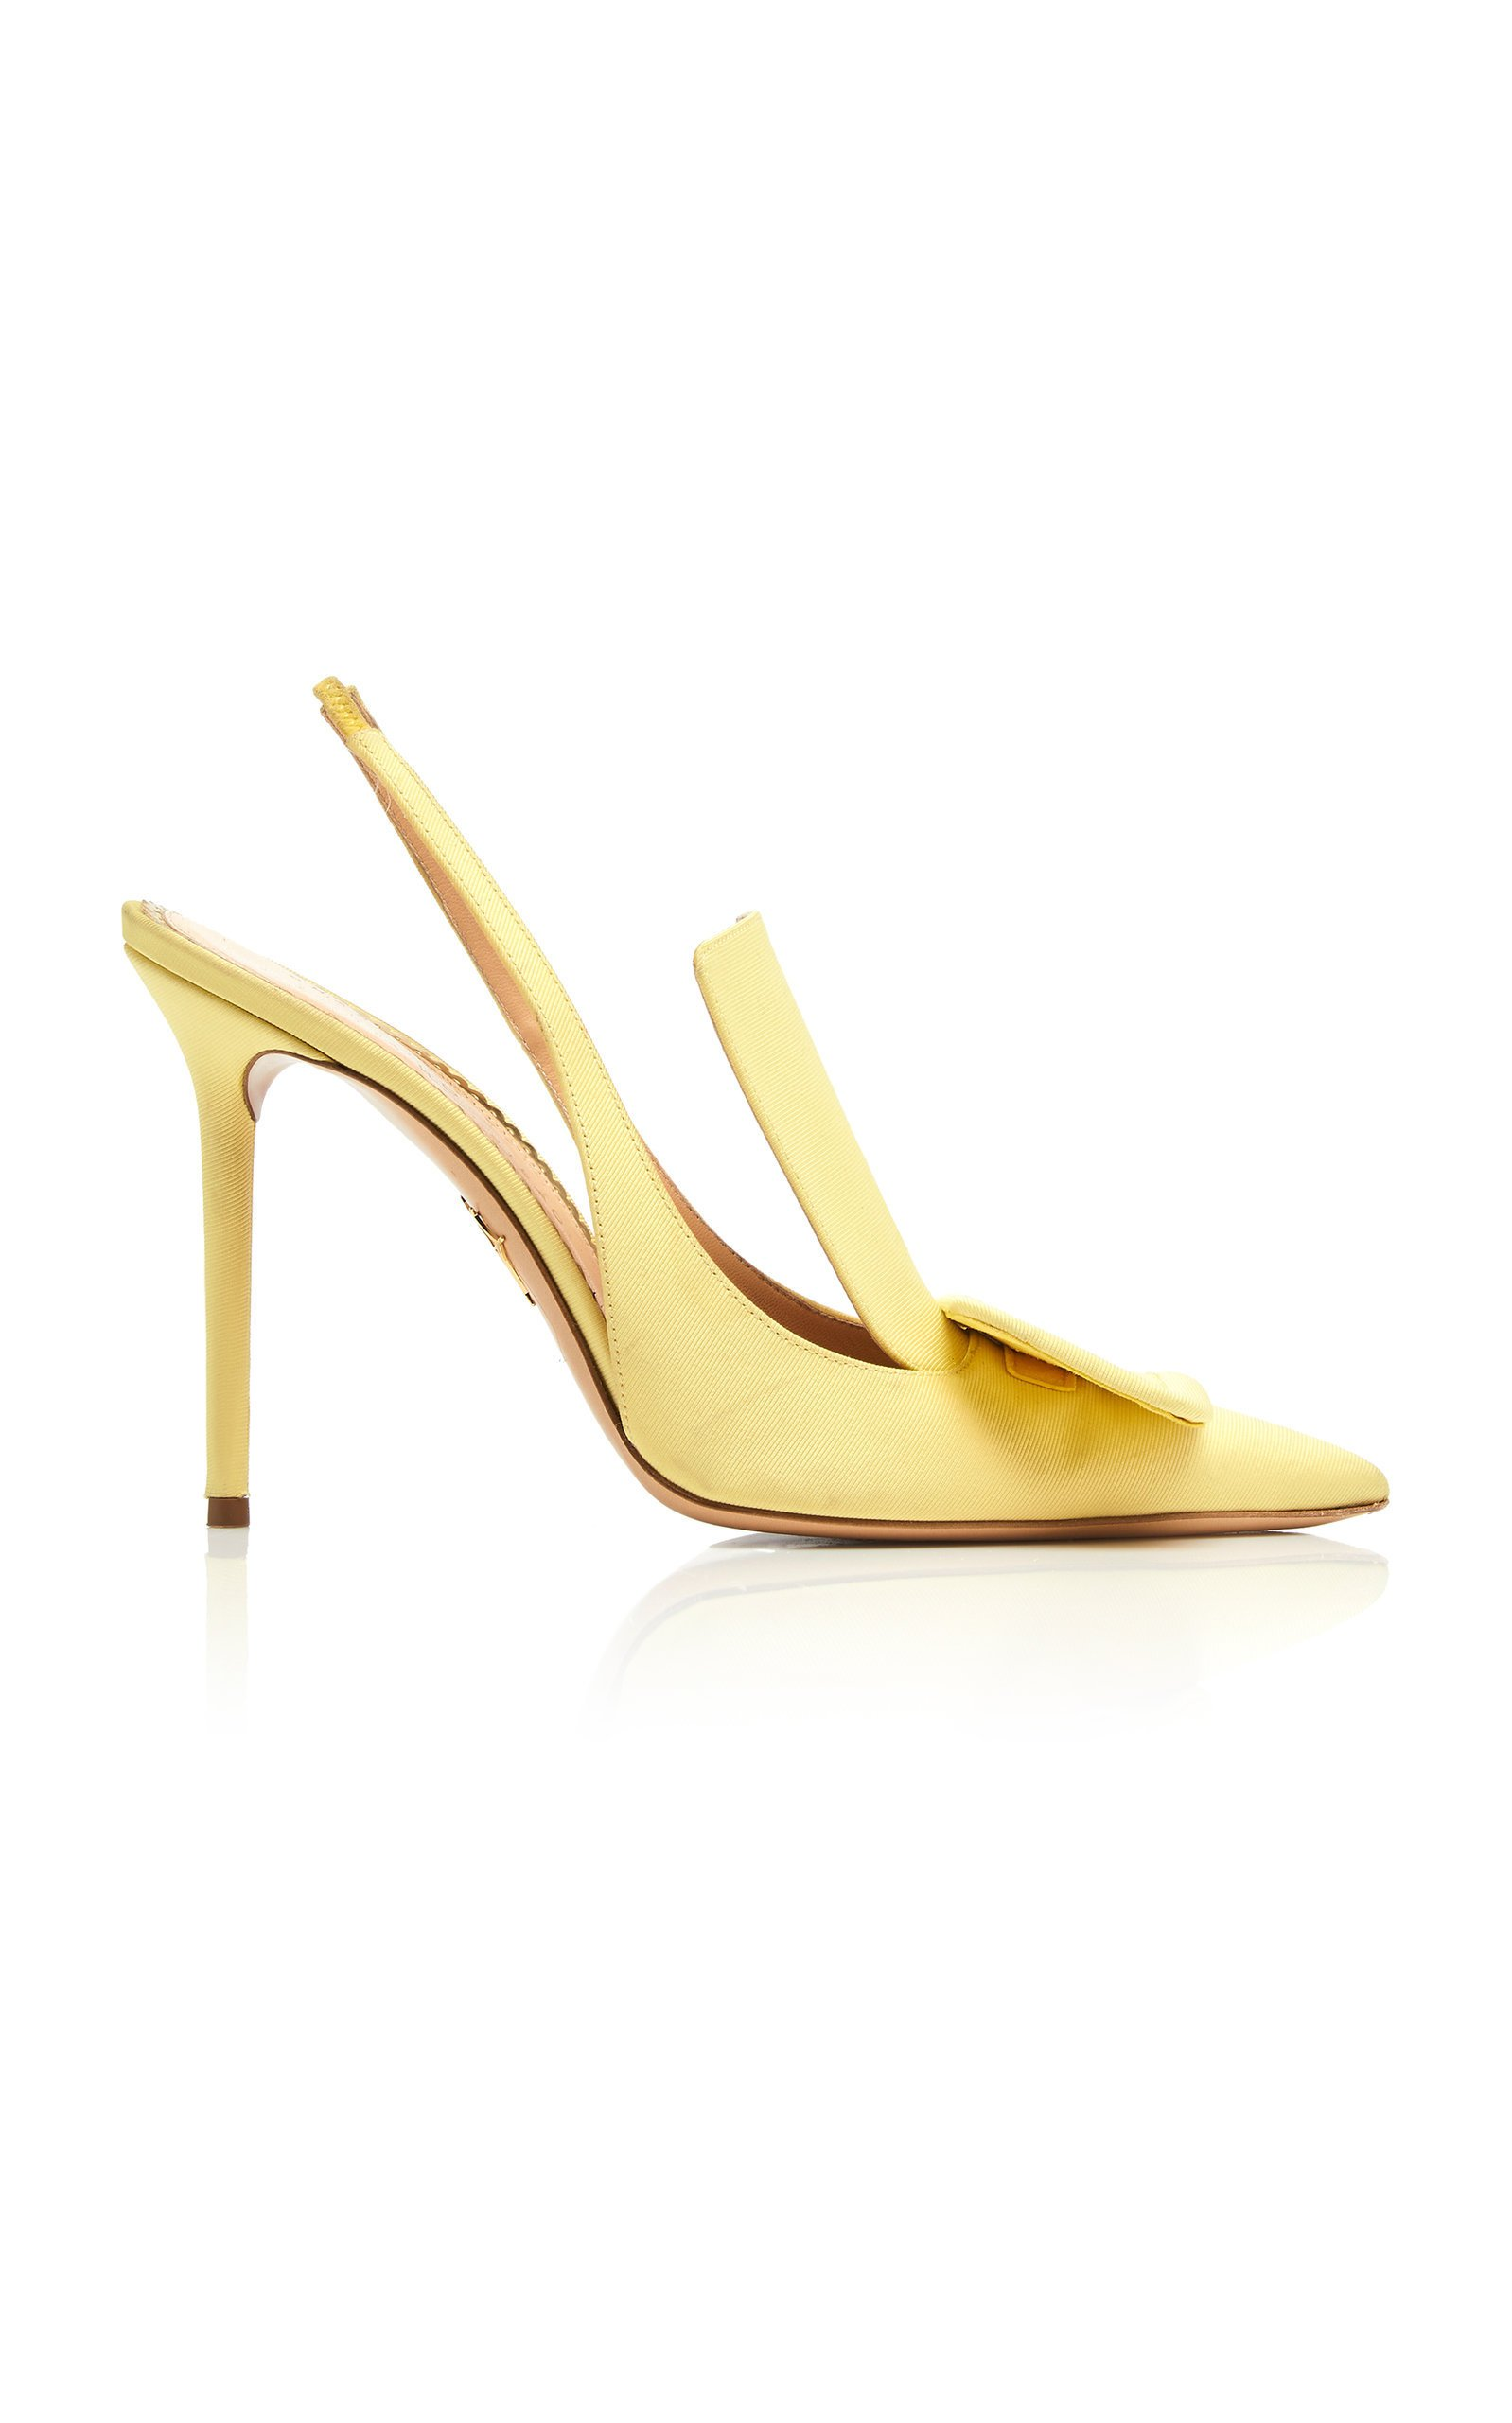 Emilia Wickstead Tonal Slingbacks